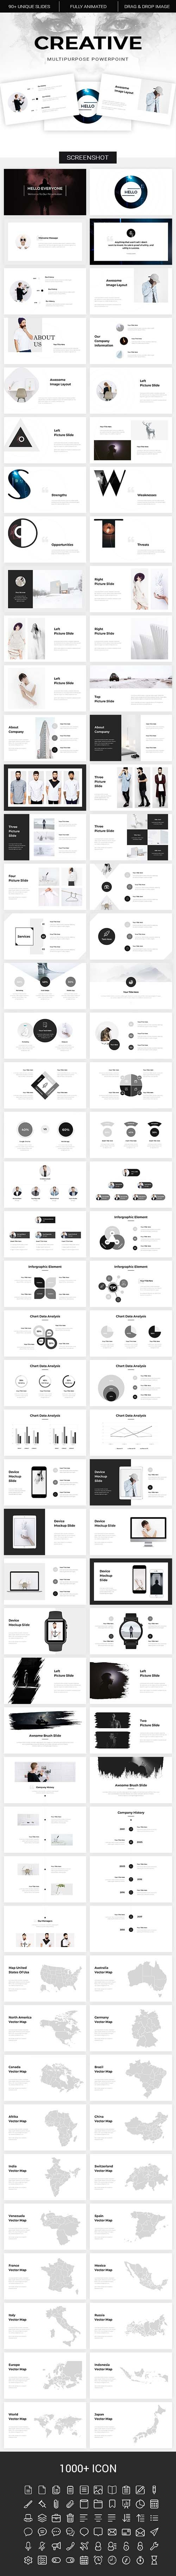 Creative - Multipurpose Powerpoint Template 19923974